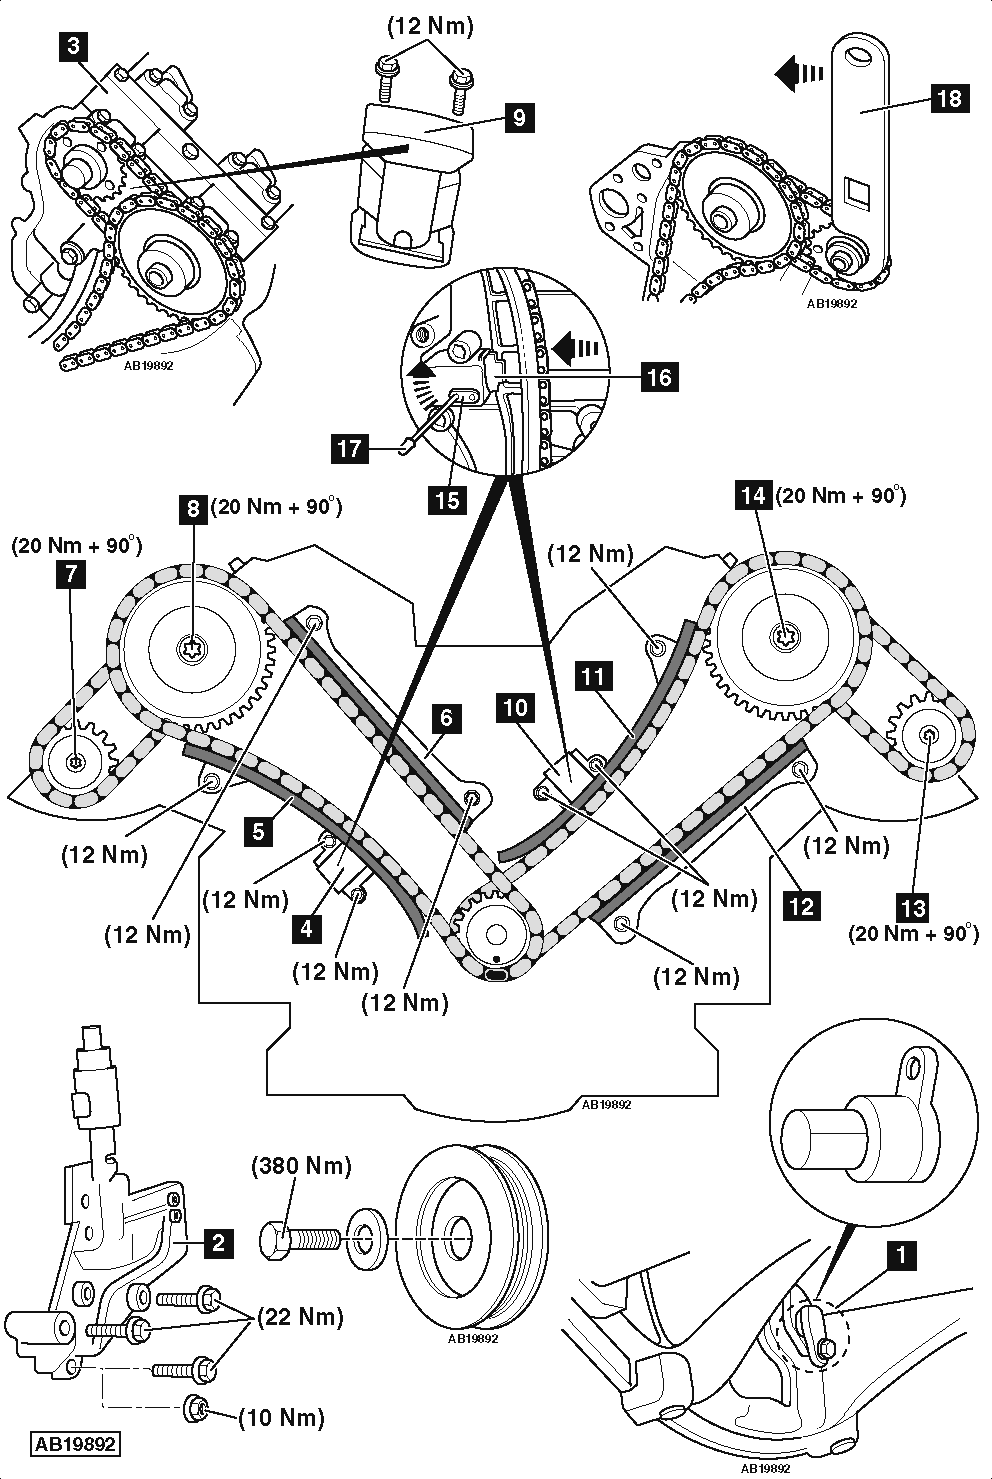 Cadillac deville turn signal flasher location furthermore subaru outback engine diagram moreover jaguar 6 cylinder engine